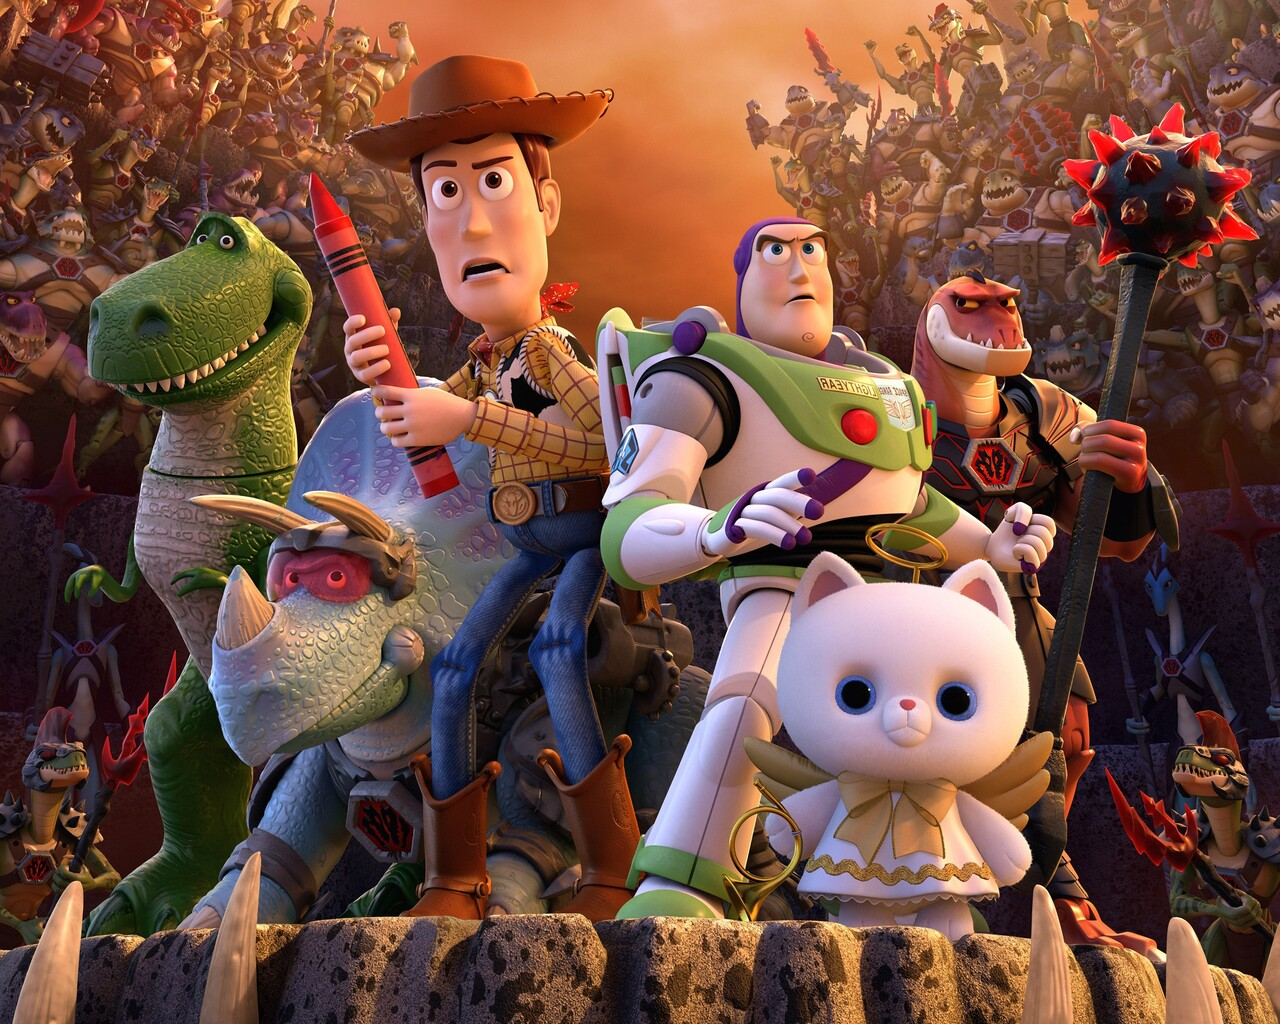 1280x1024 toy story that time forgot 1280x1024 resolution hd 4k